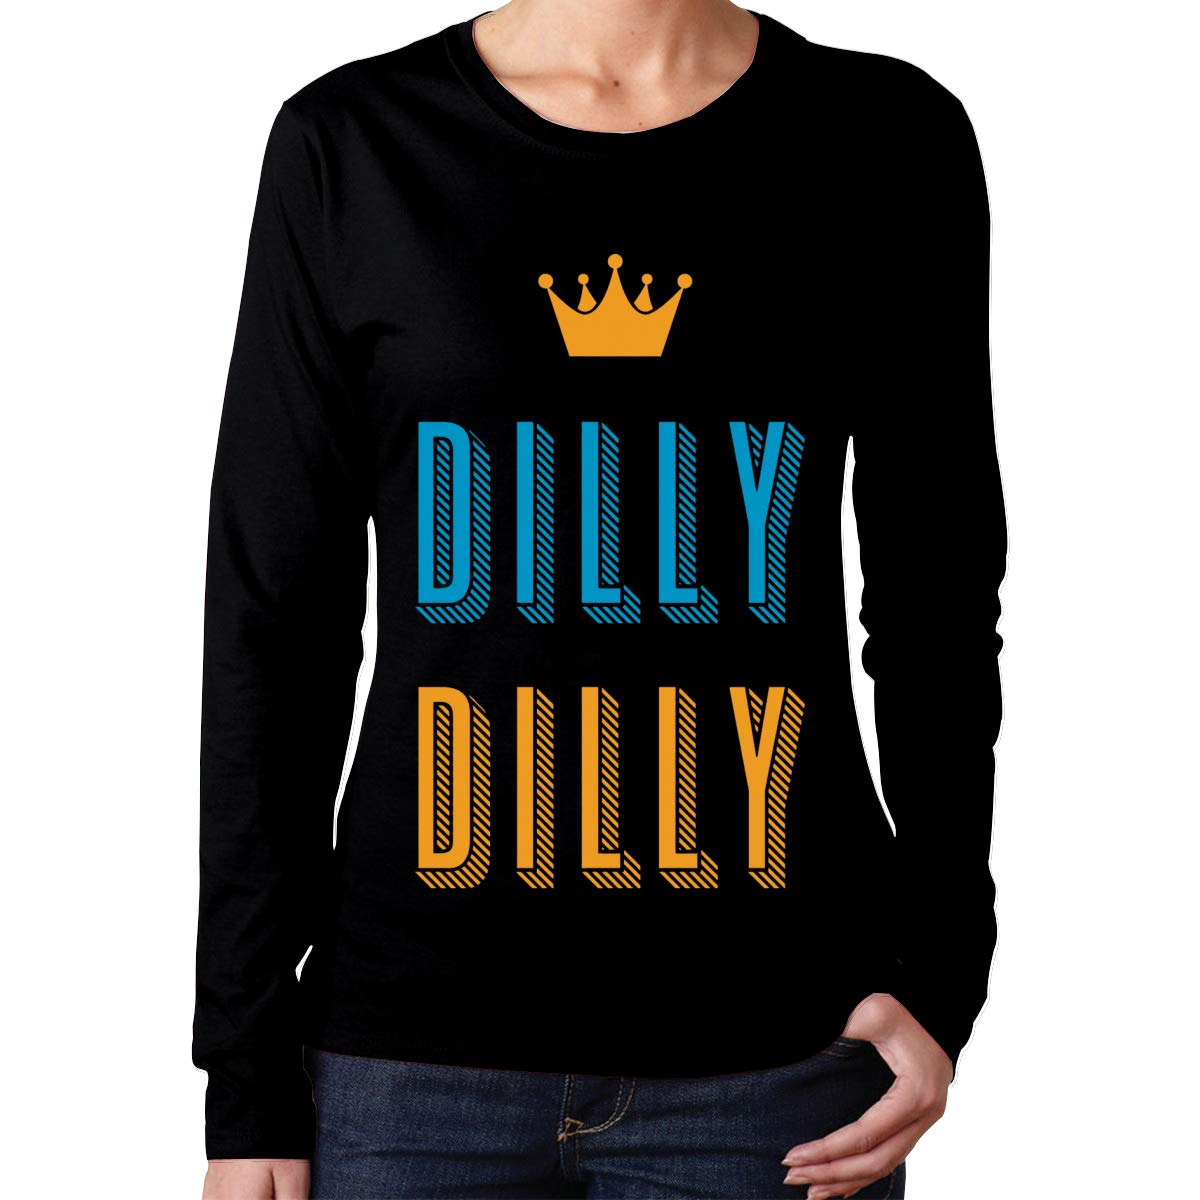 Xzhkrgjfwgd Womens Dilly Dilly Long-Sleeved T-Shirt